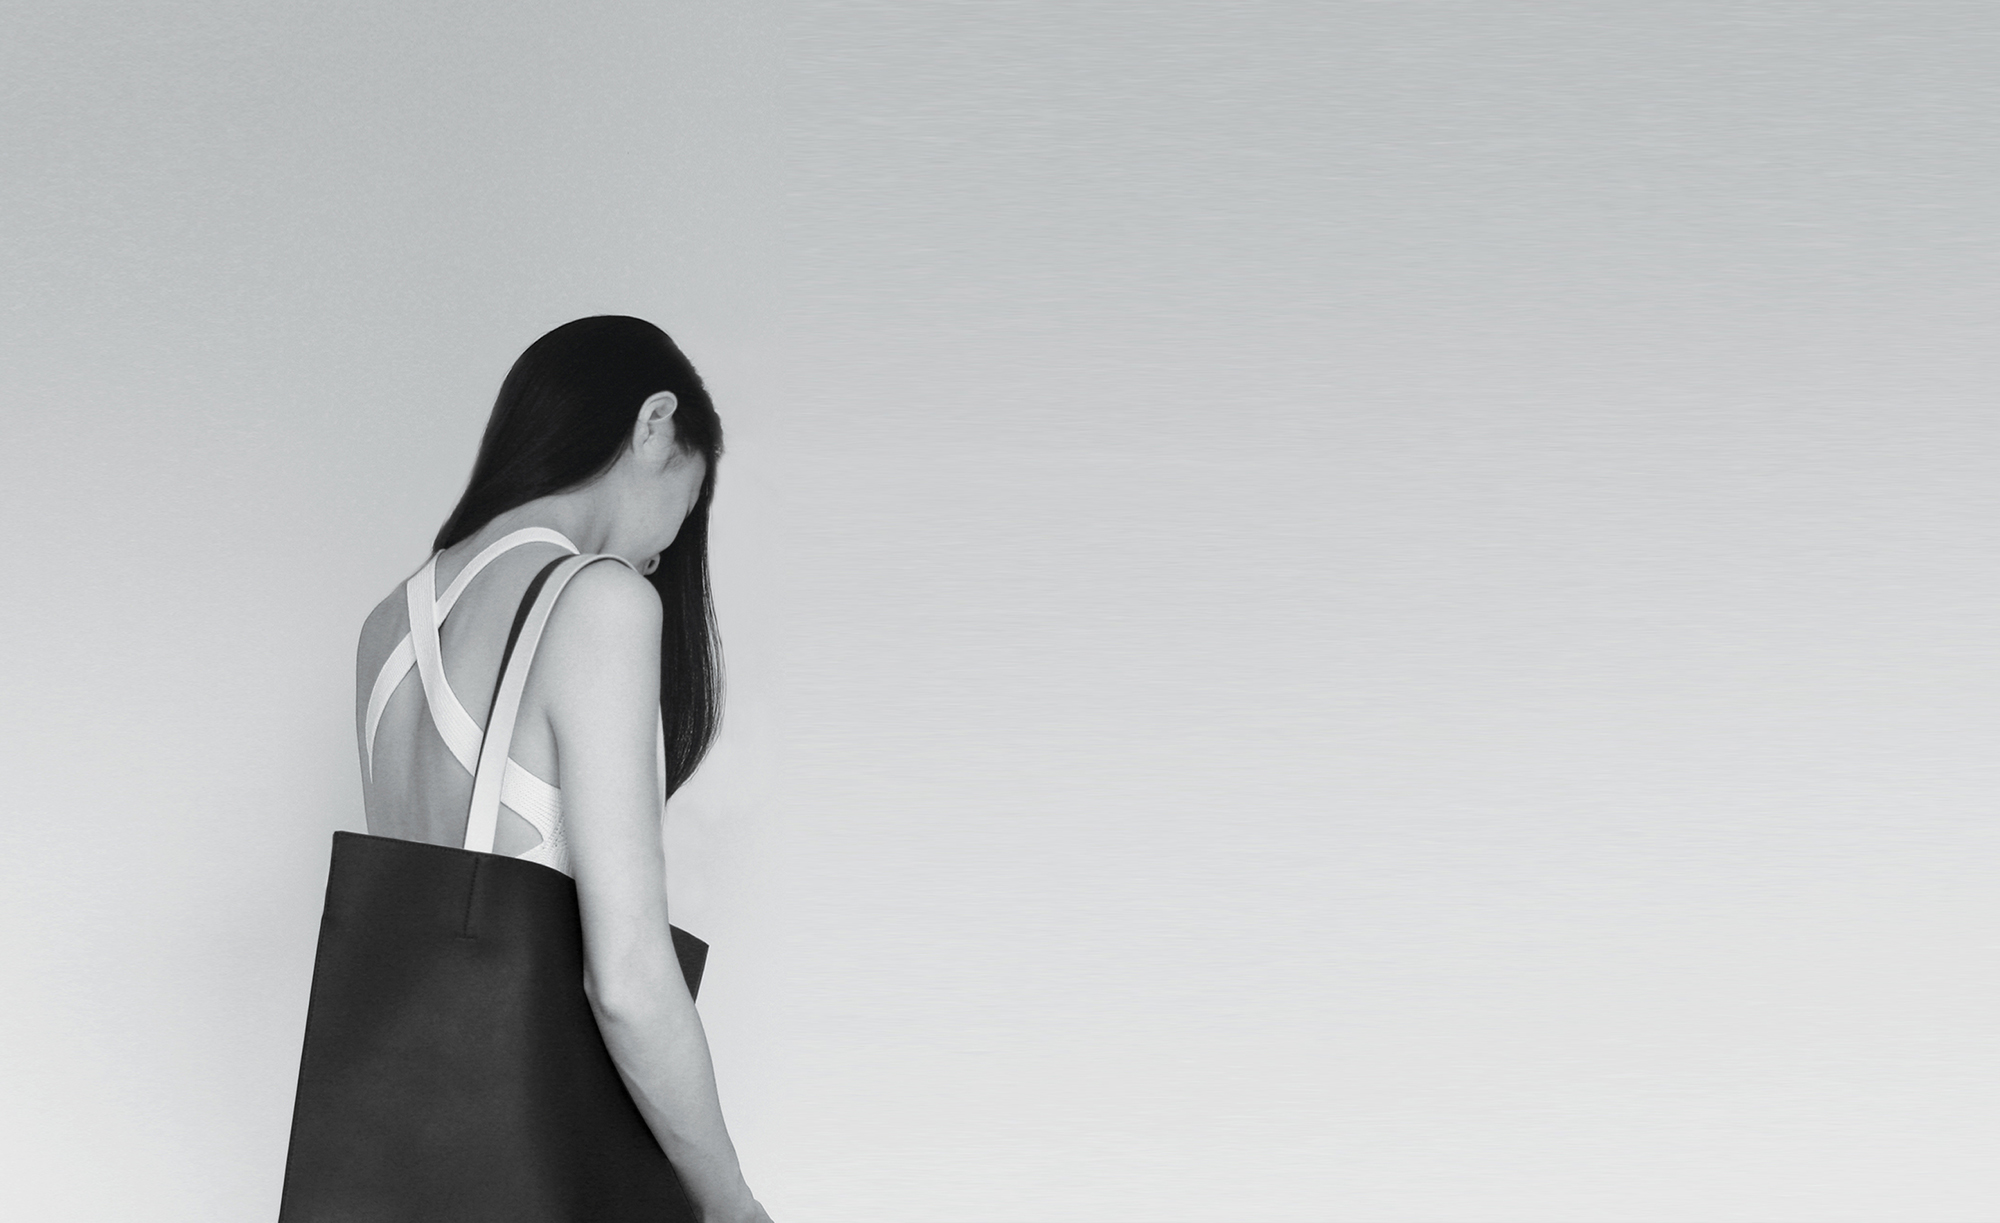 Maisie Tote designed by Verge Creative Group #byverge